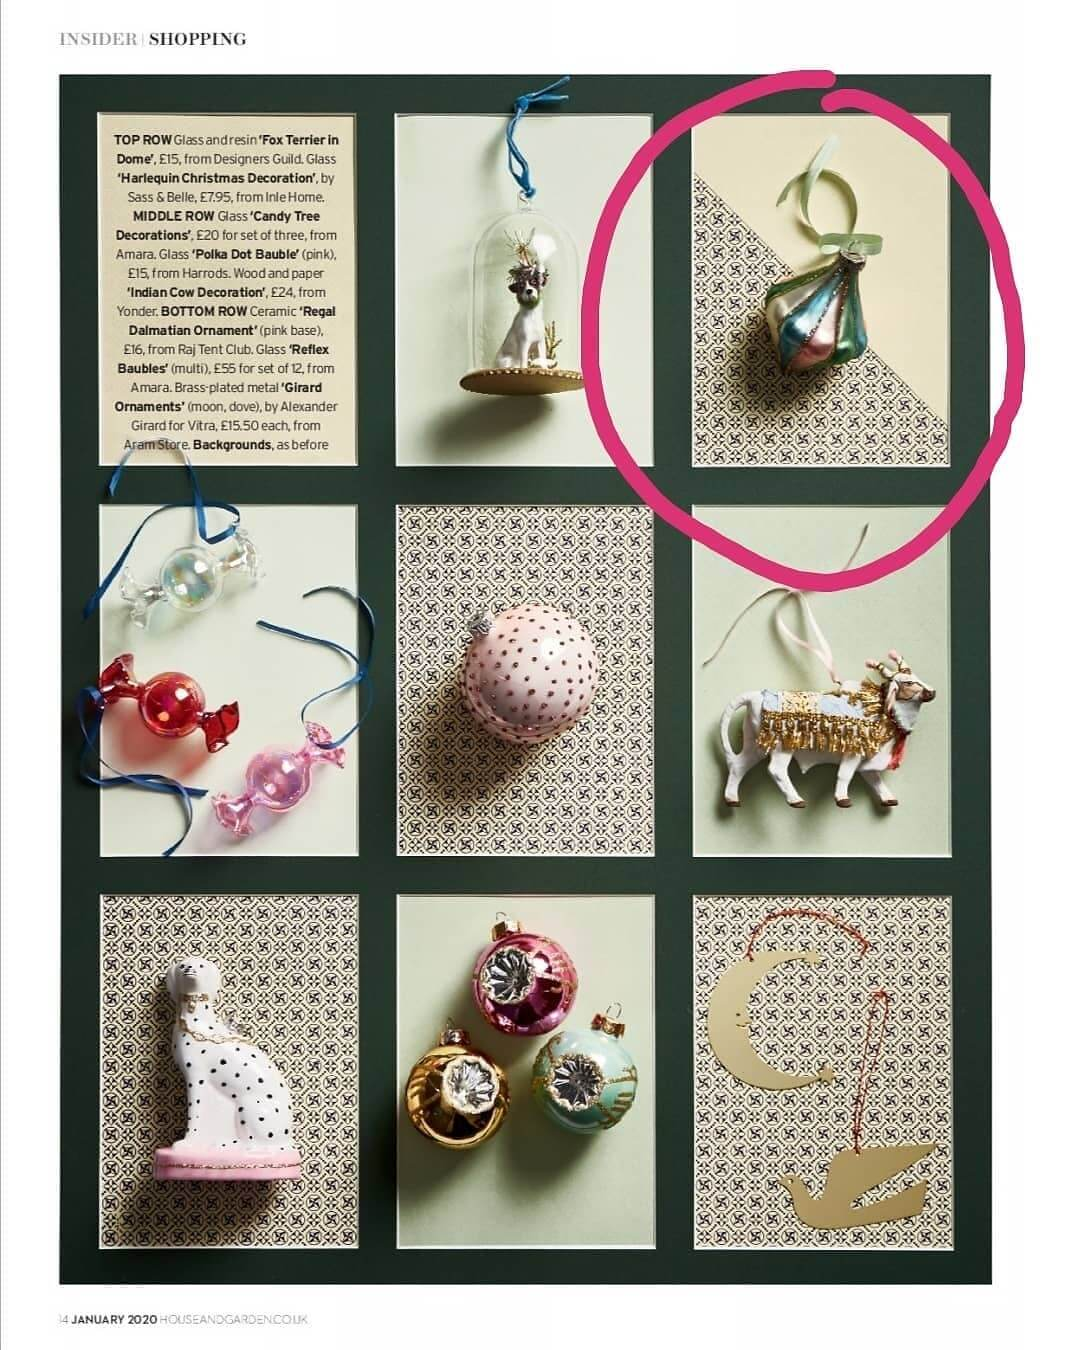 So proud to be featured in the latest issue of House and Garden! Only a few of these gorgeous harlequin decorations left in stock